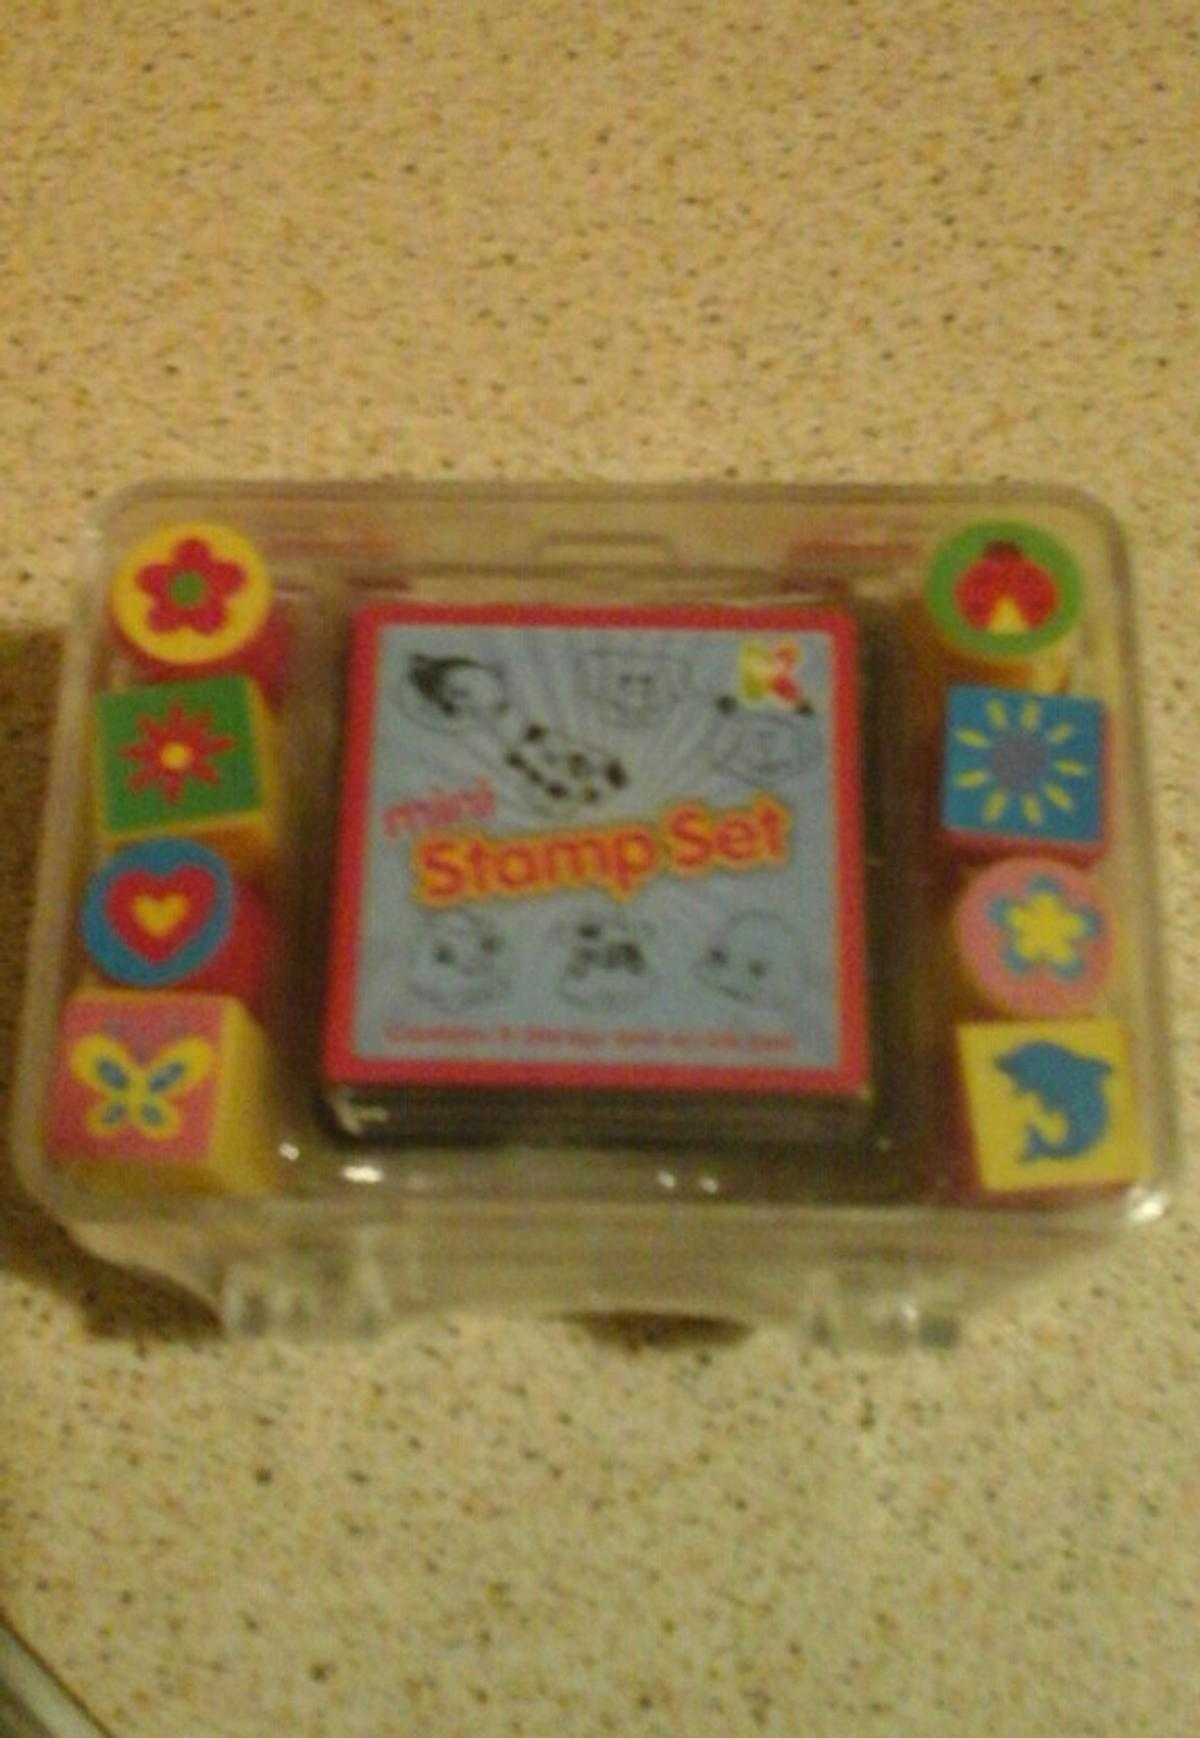 Mini stamp set brand new pick up only great little gift pick up only